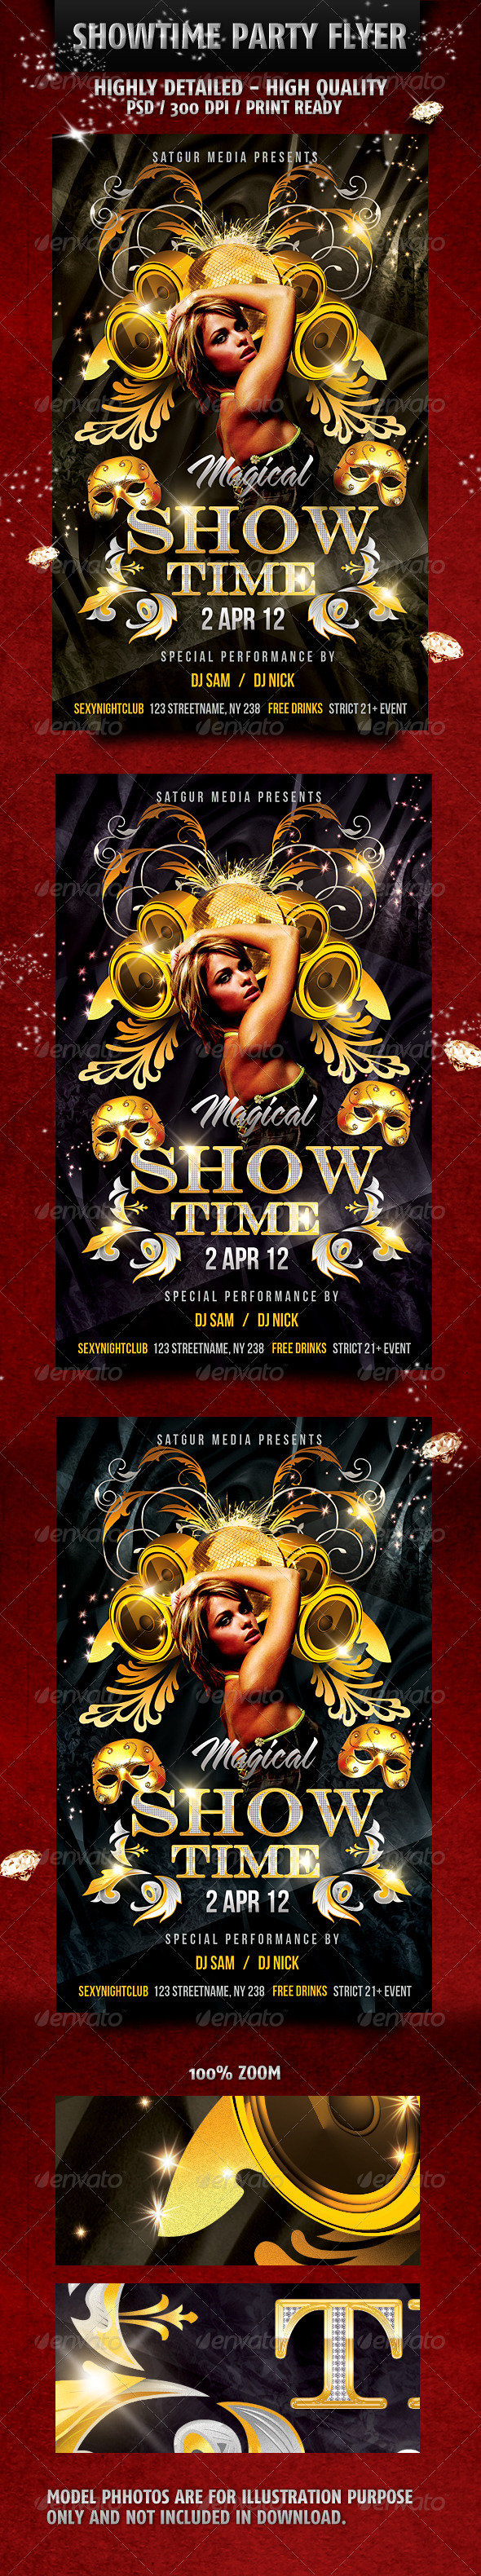 Magical Showtime Music Dance Party Flyer - Flyers Print Templates